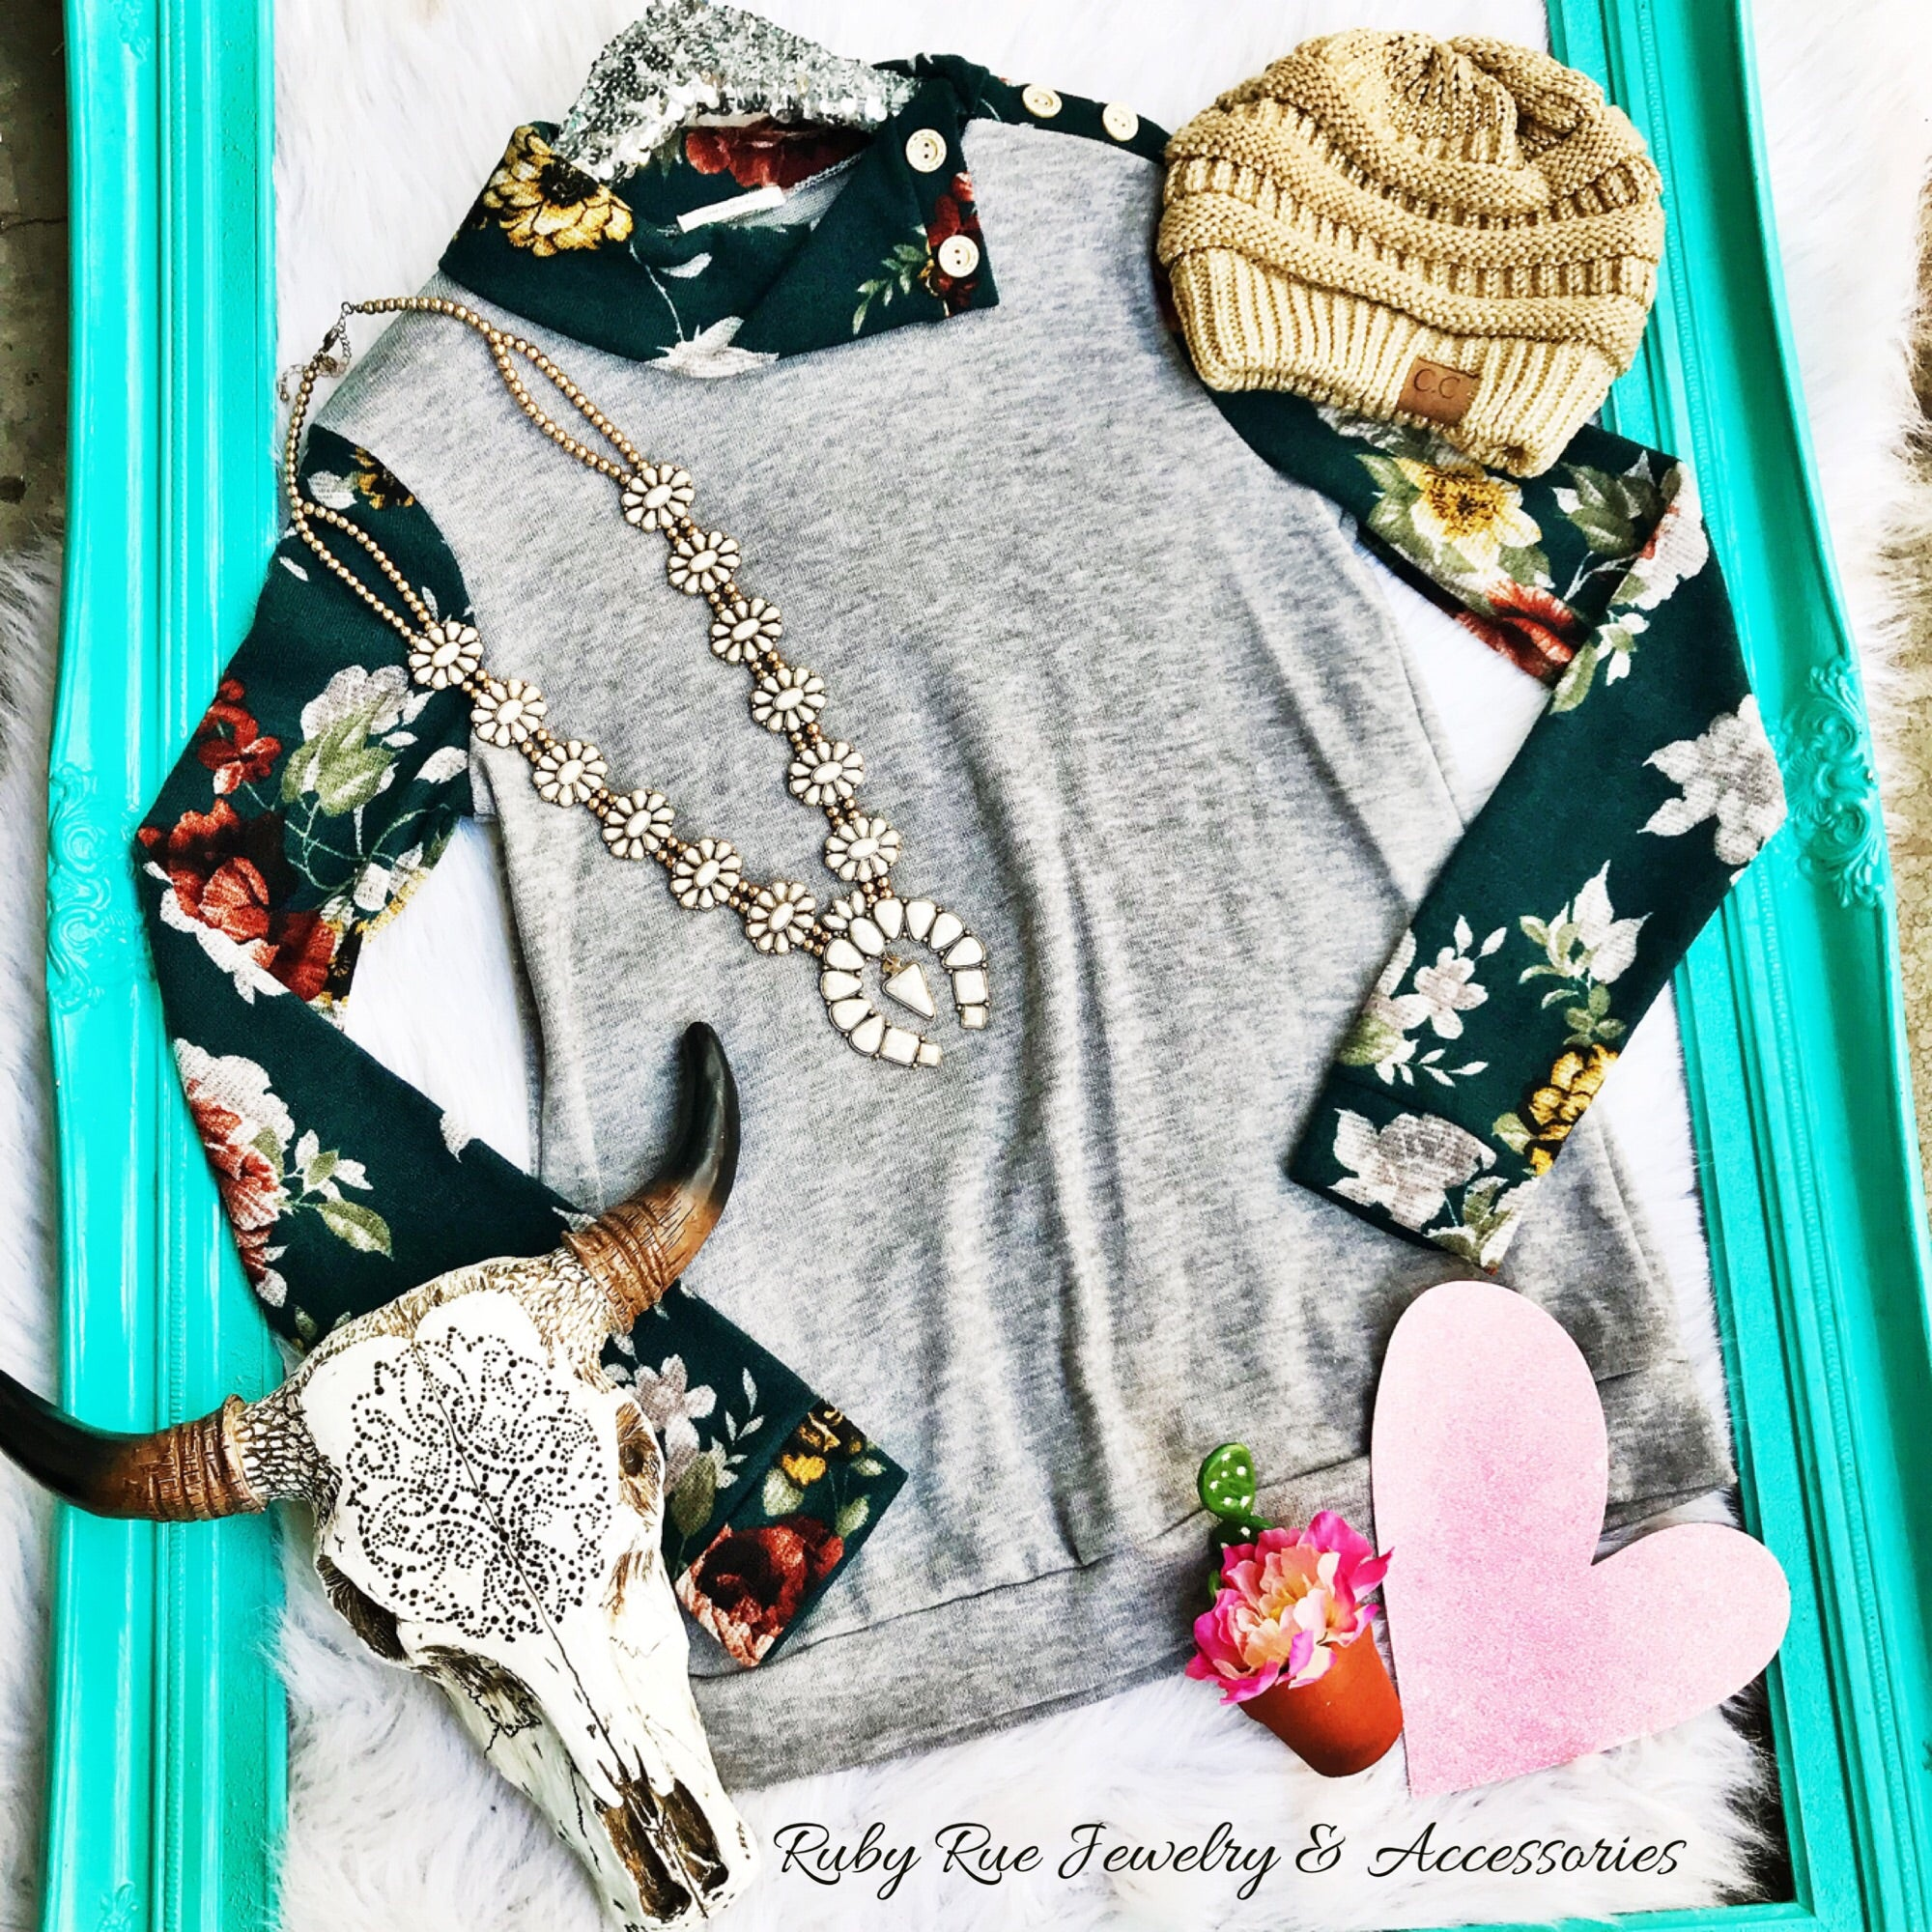 Dark Turquoise Floral Longsleeve - Ruby Rue Jewelry & Accessories